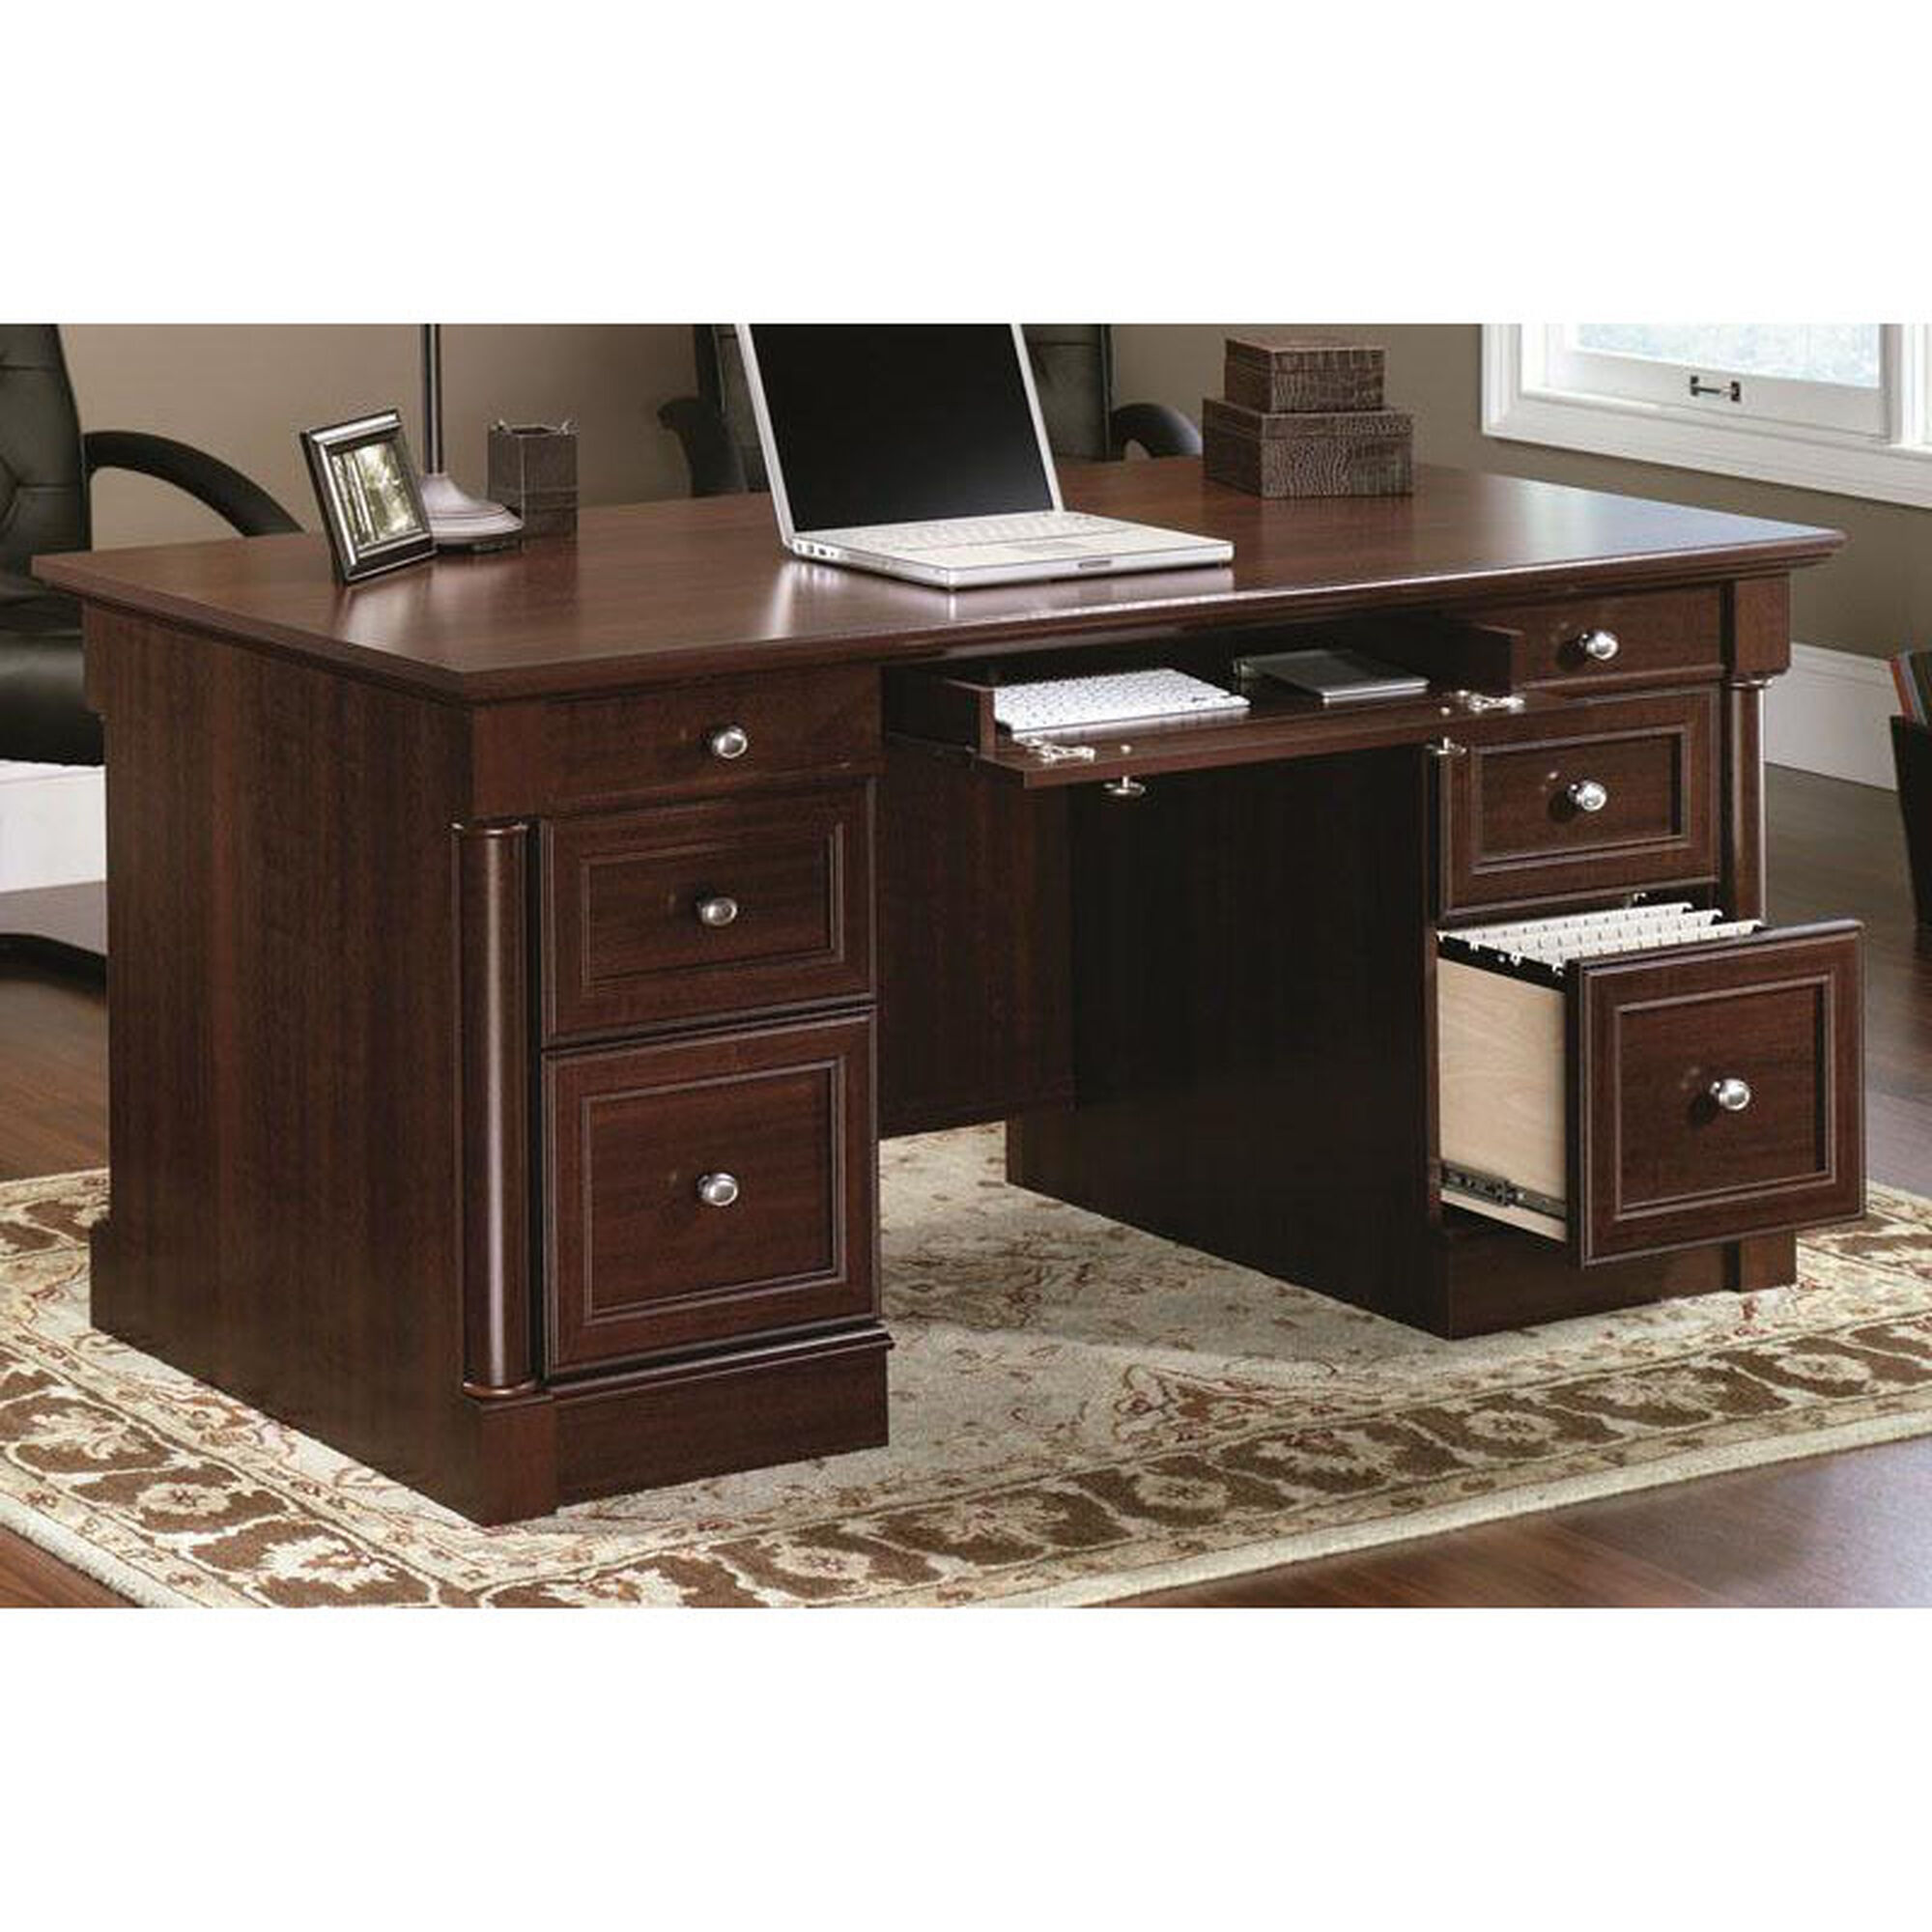 computer executive depot desk usa sauder from build in made youtube office tutorial watch